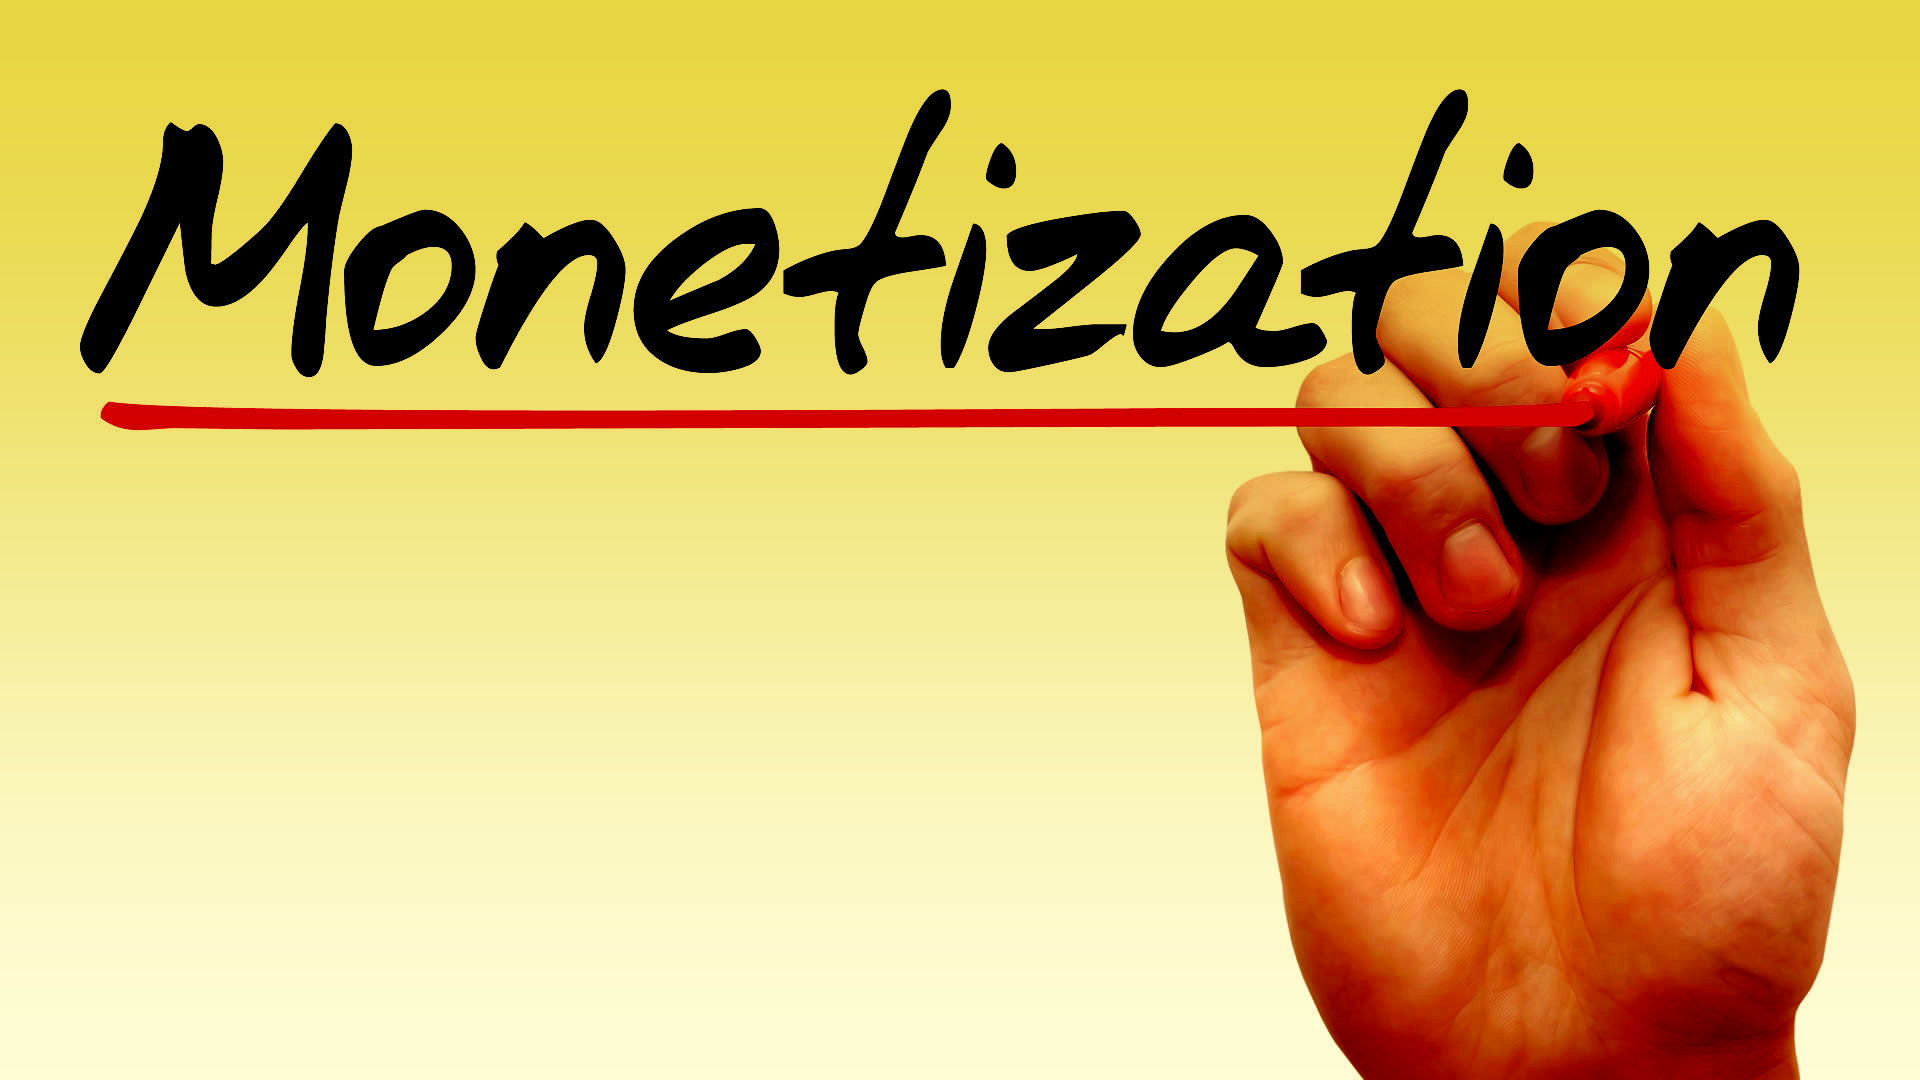 Monetization of your content via Adsense